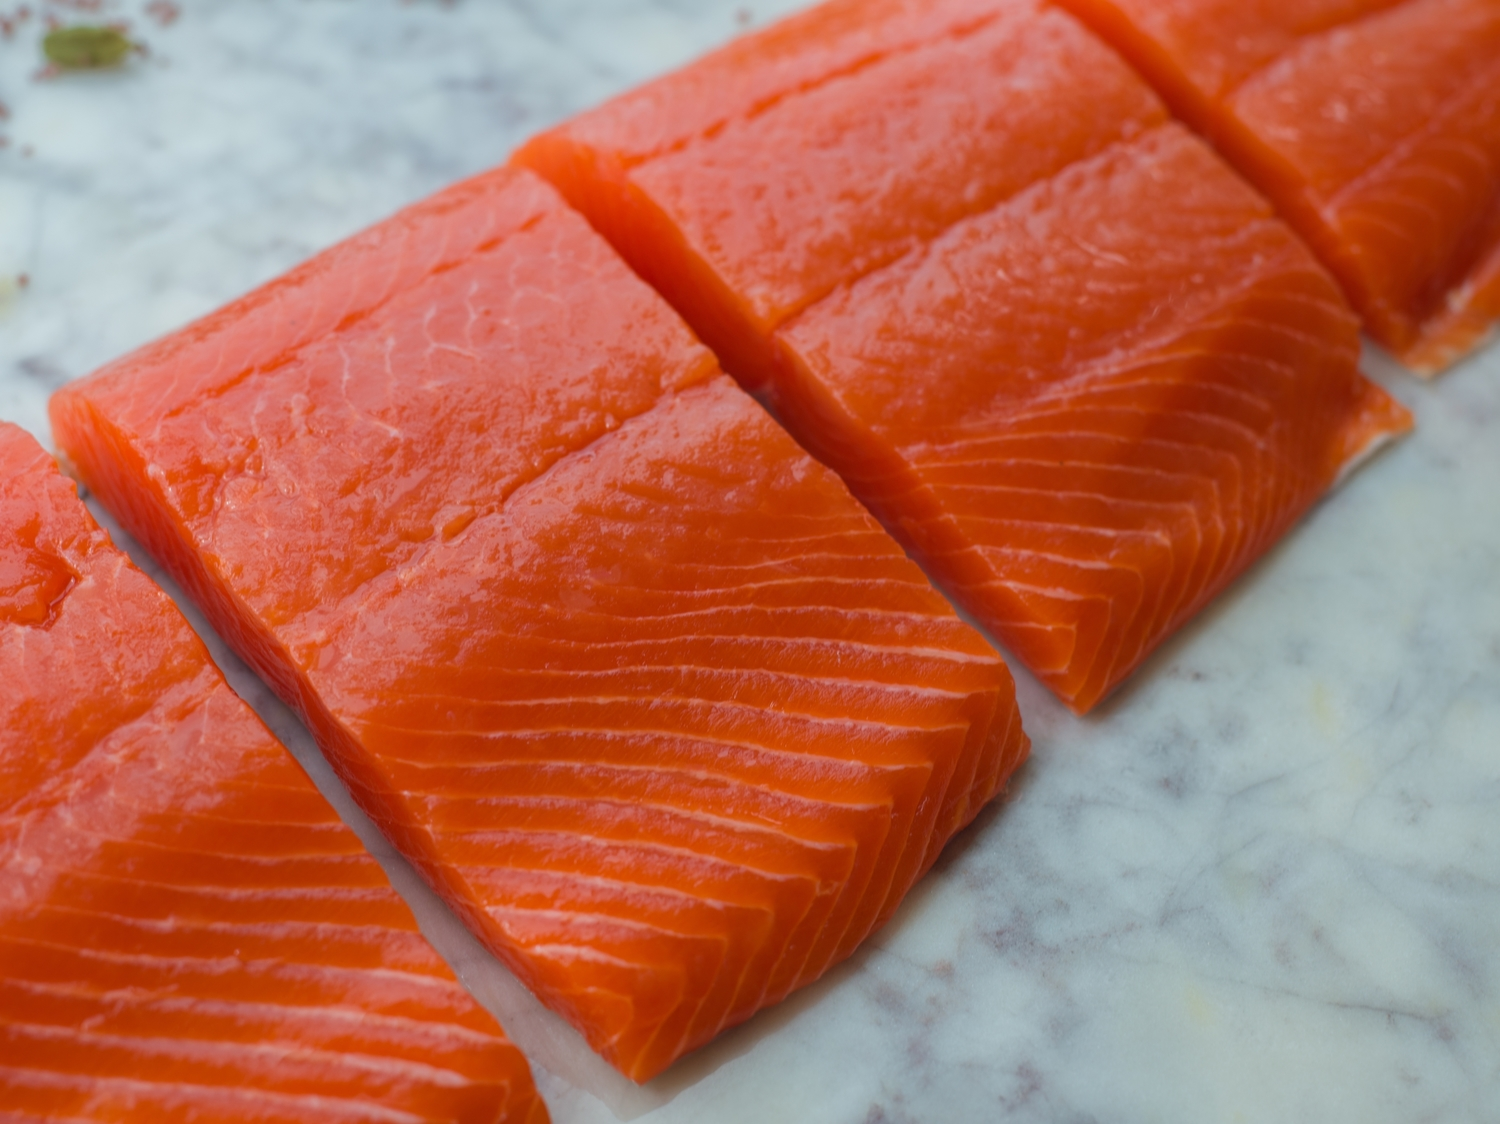 Suppliers — Bristol Bay Sockeye Salmon